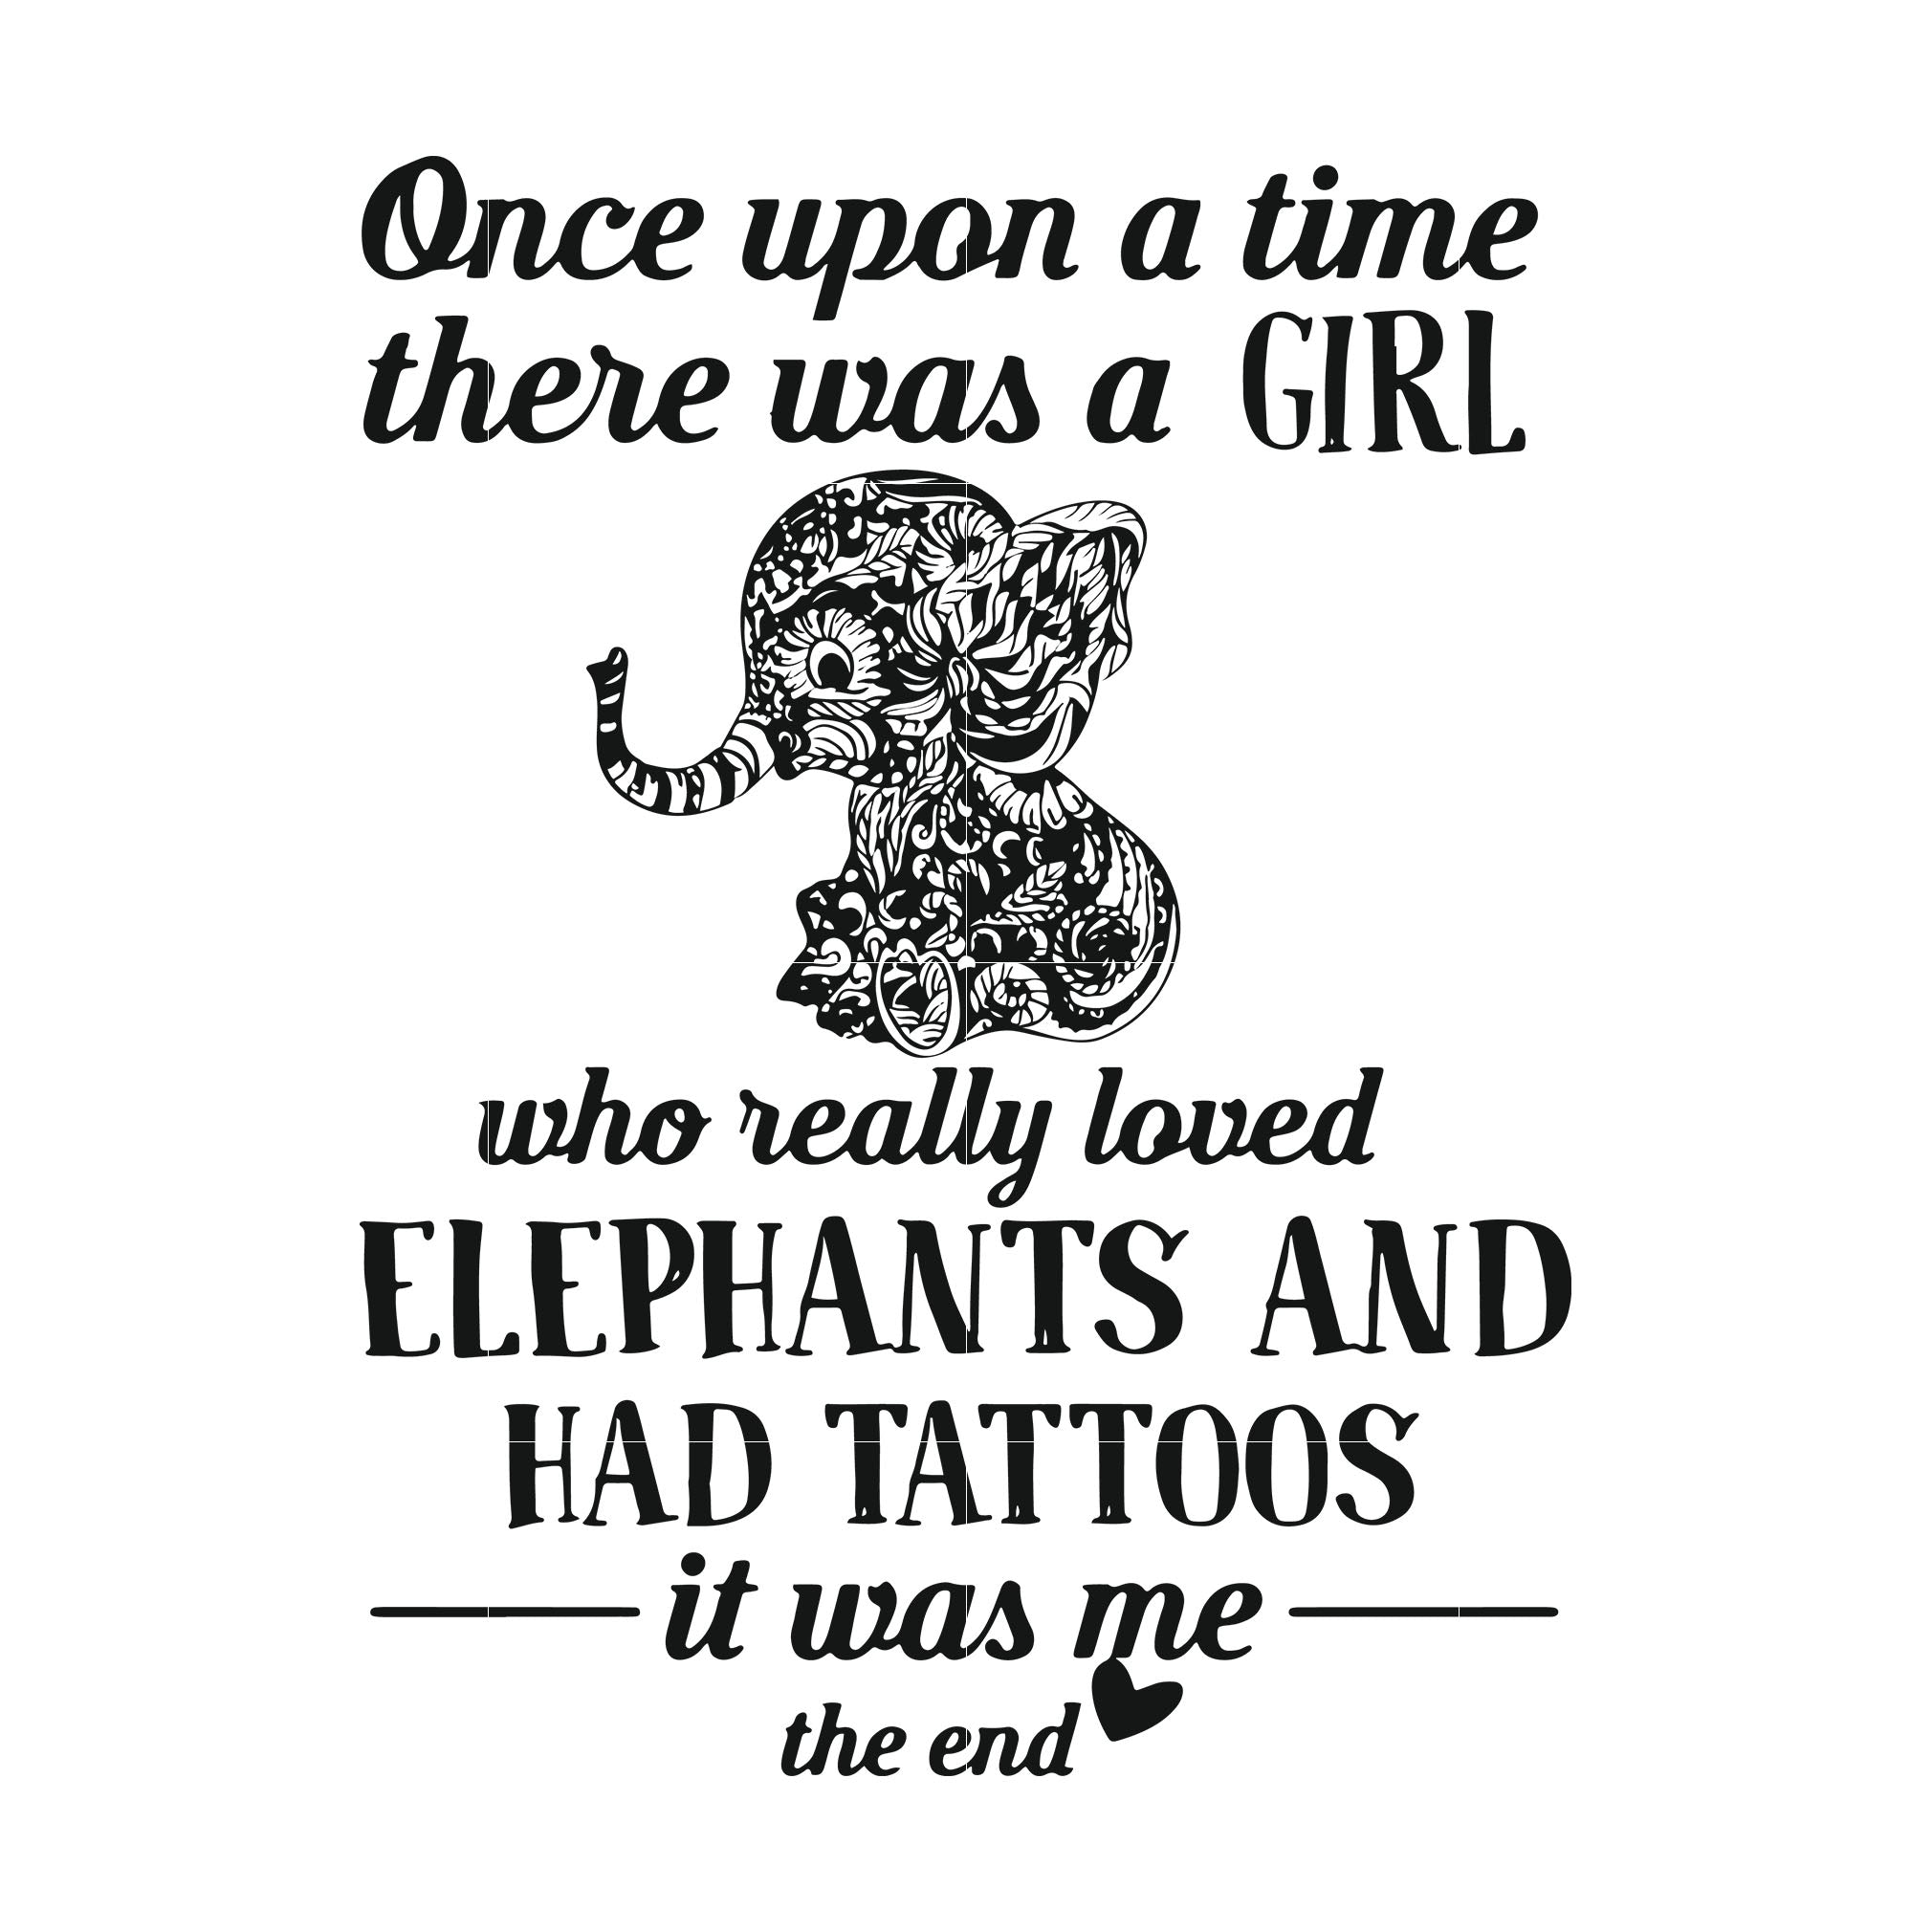 Once upon a time there was a girl who really loved elephants and had tattoos it was me the end svg ,dxf,eps,png digital file